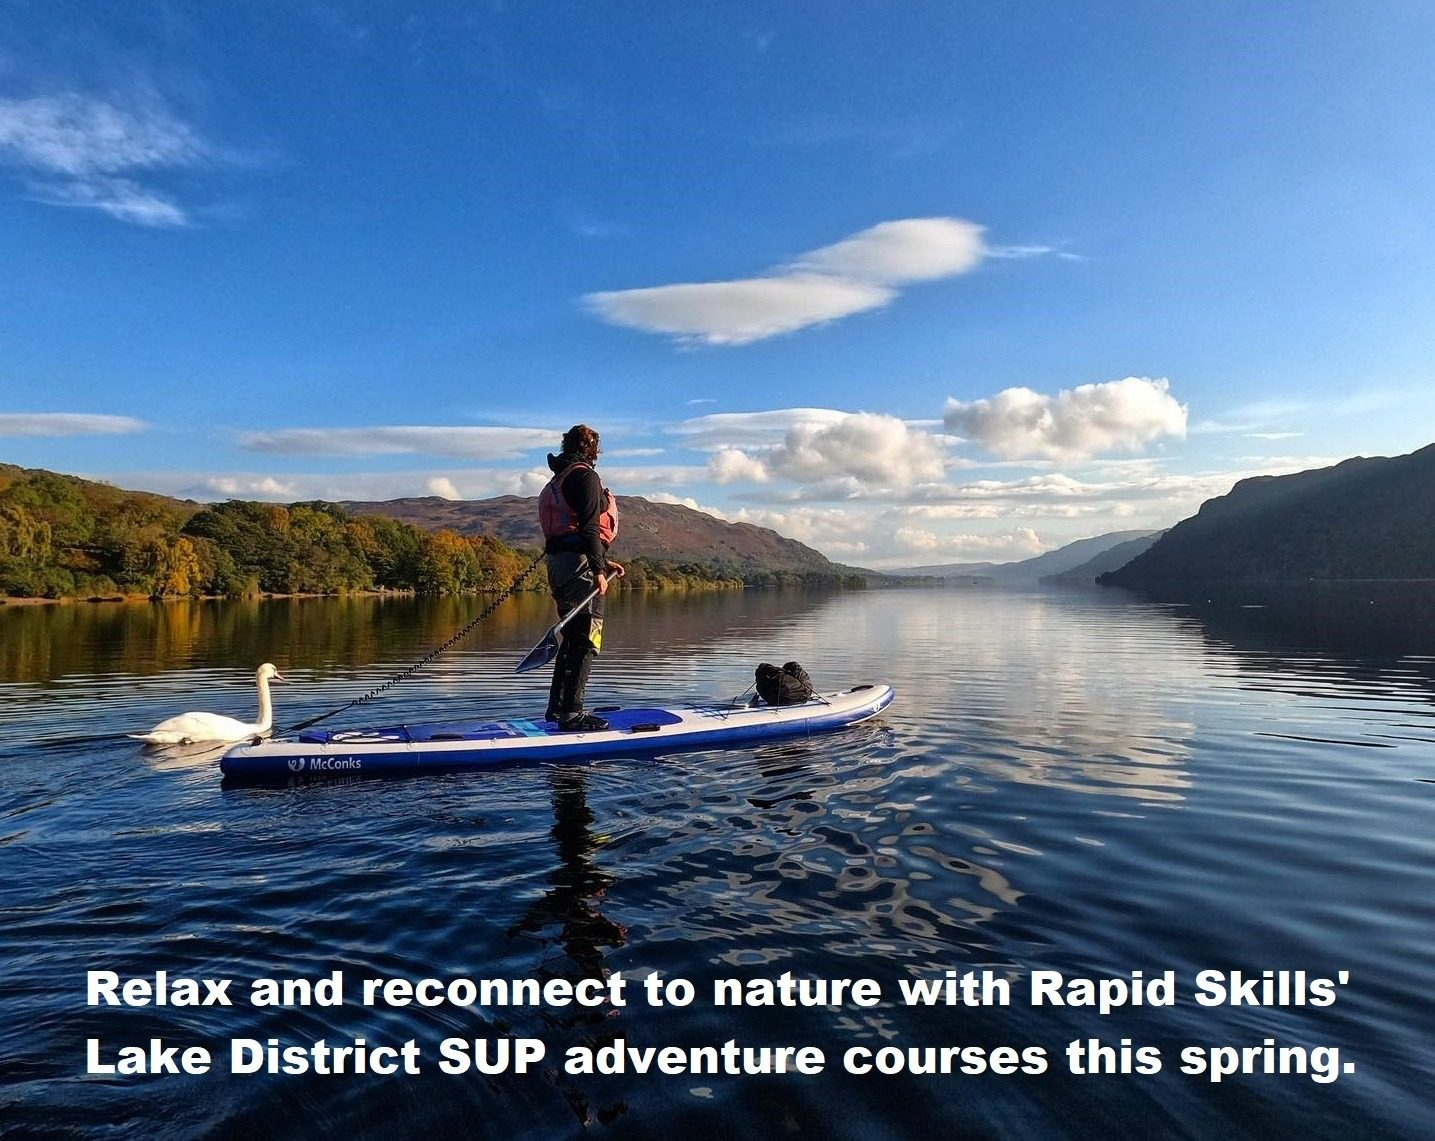 Relax and reconnect to nature with Rapid Skills' Lake District SUP adventure courses this spring.